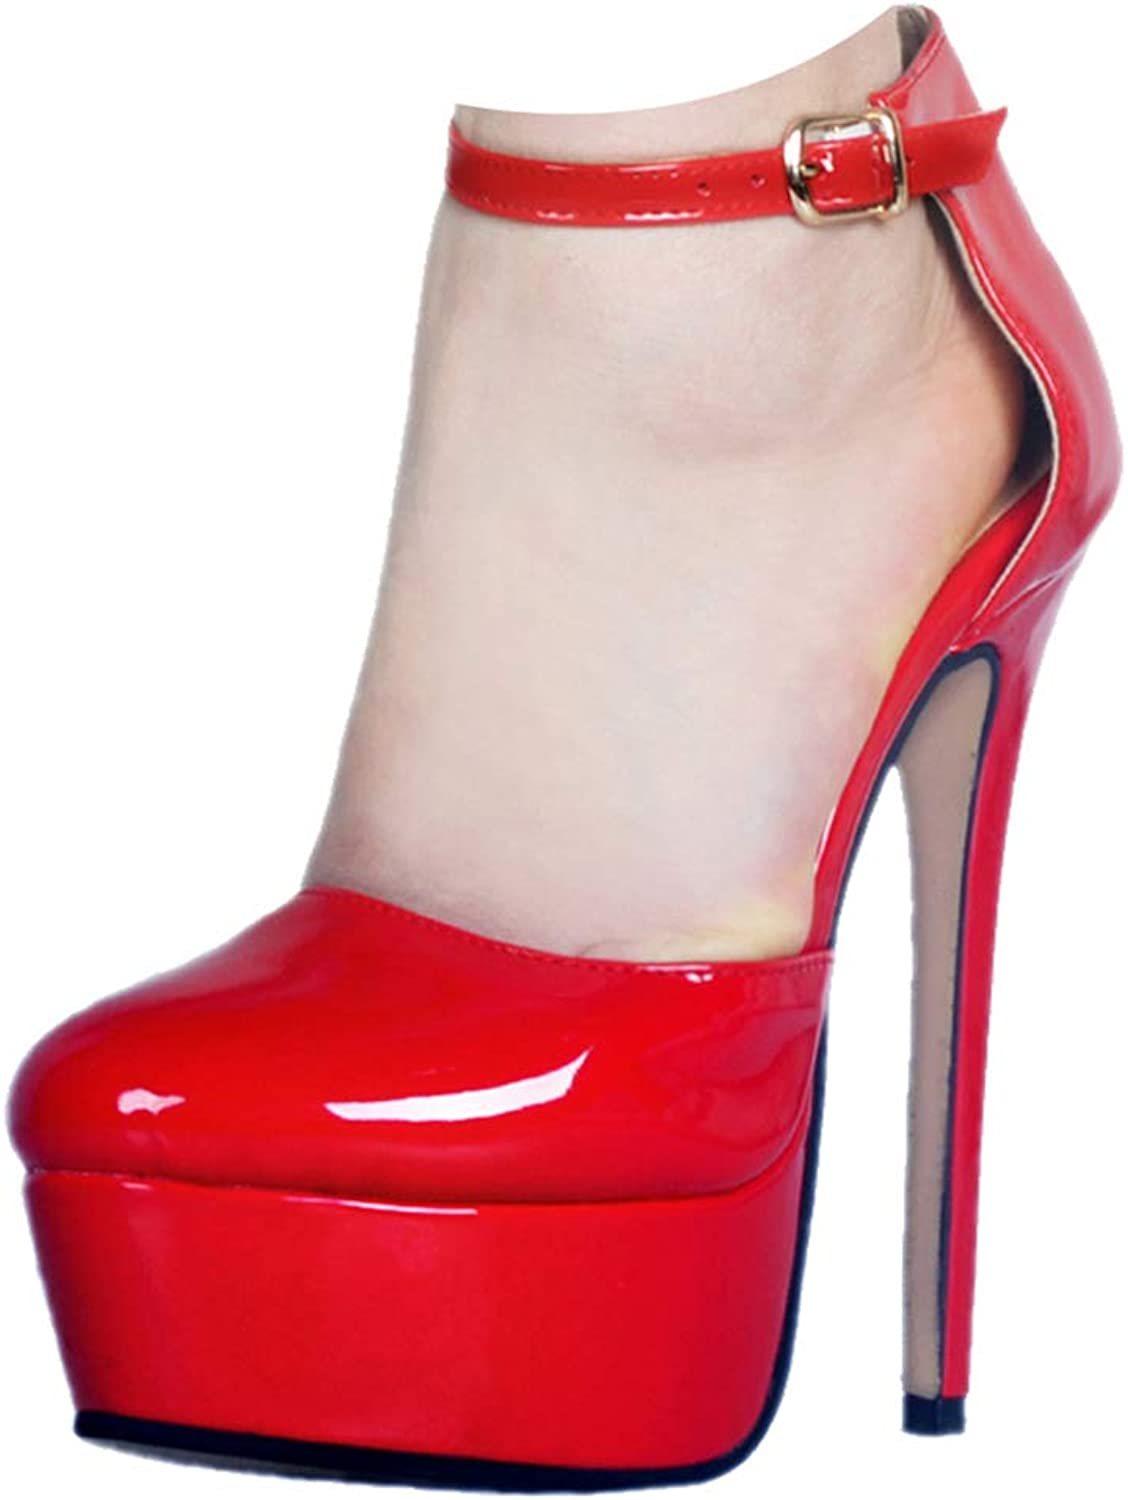 CASSOCK Ladies Handmade Patent Mary Janes Style Buckle Strap High Heel Pumps shoes